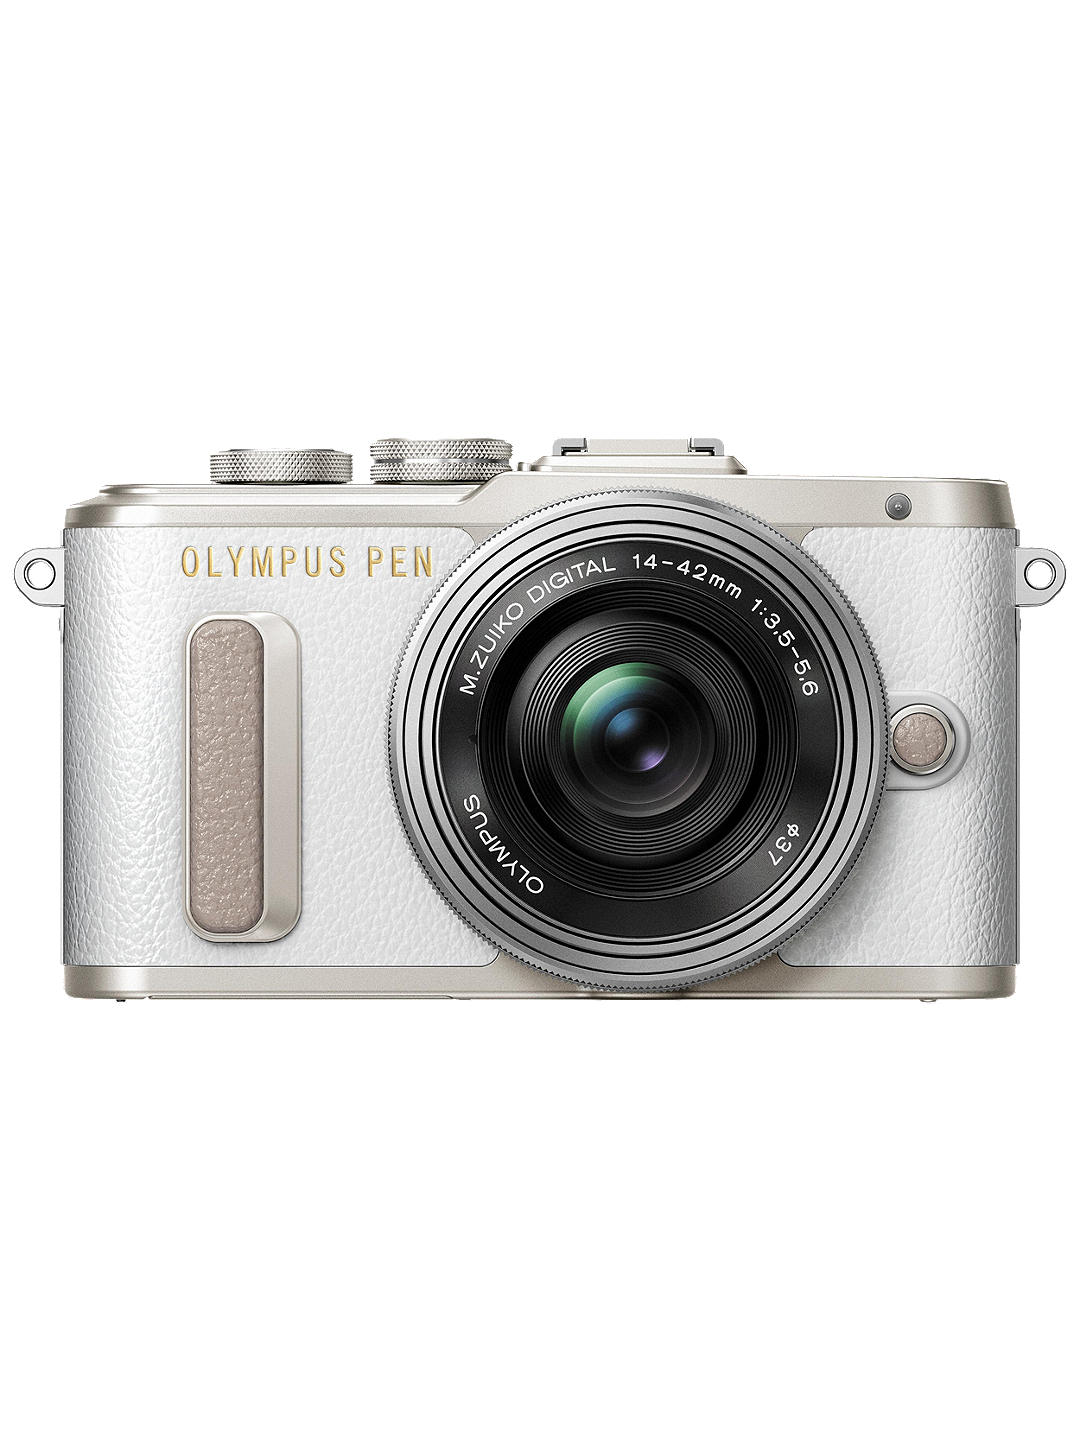 Olympus Pen camera for photographing your honeymoon